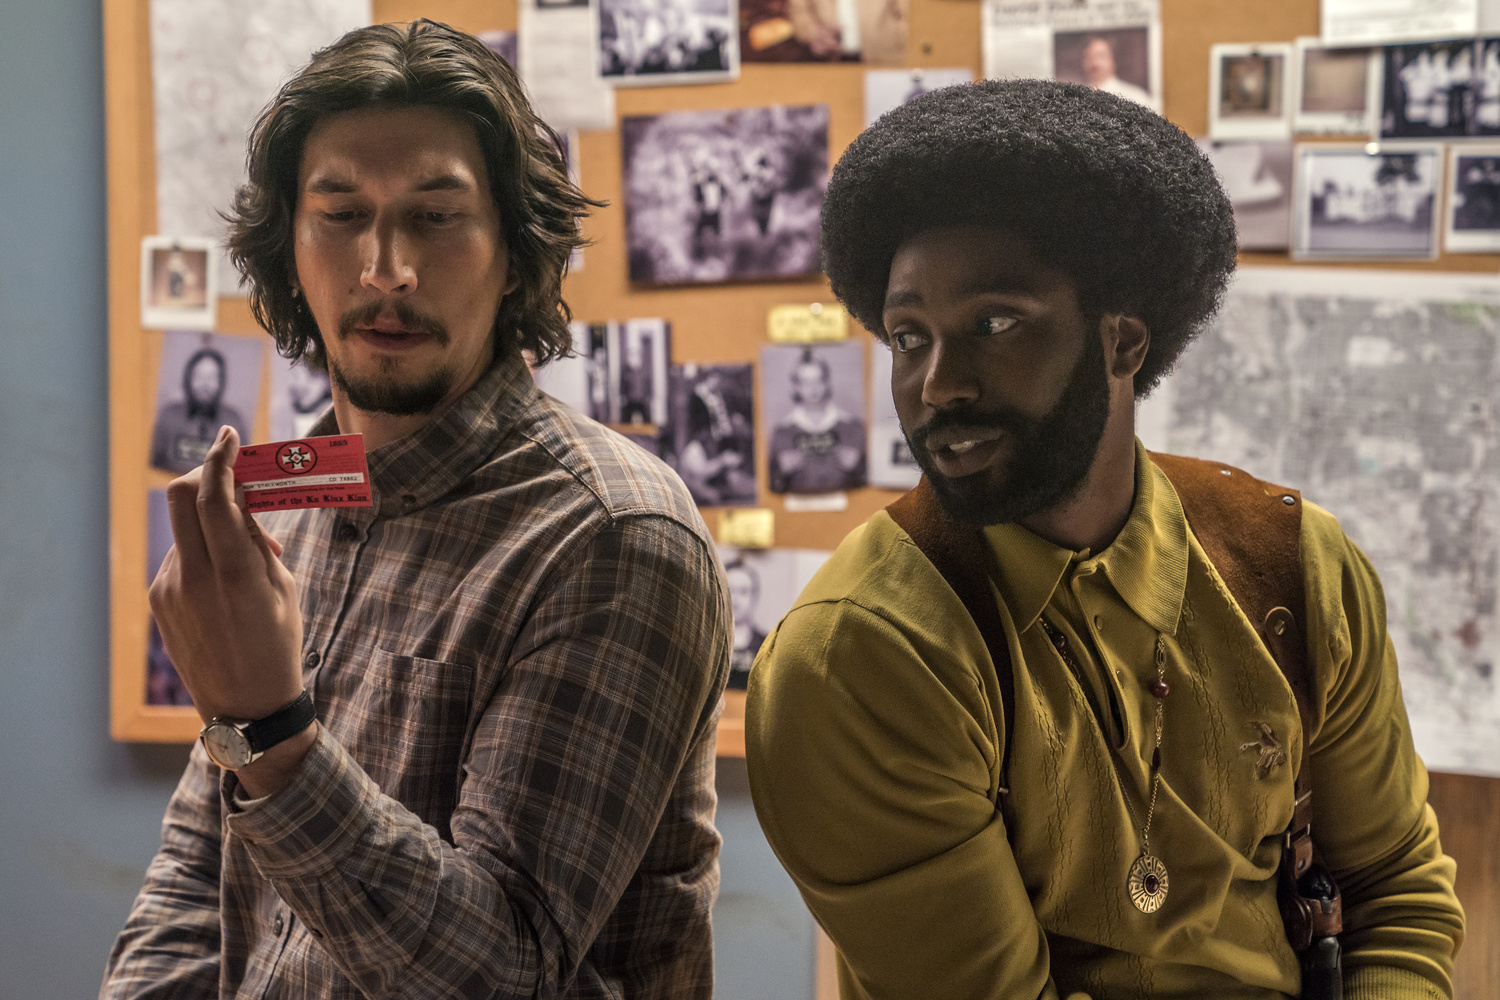 BlacKkKlansman. 2018. USA. Directed by Spike Lee. Courtesy of Focus Features